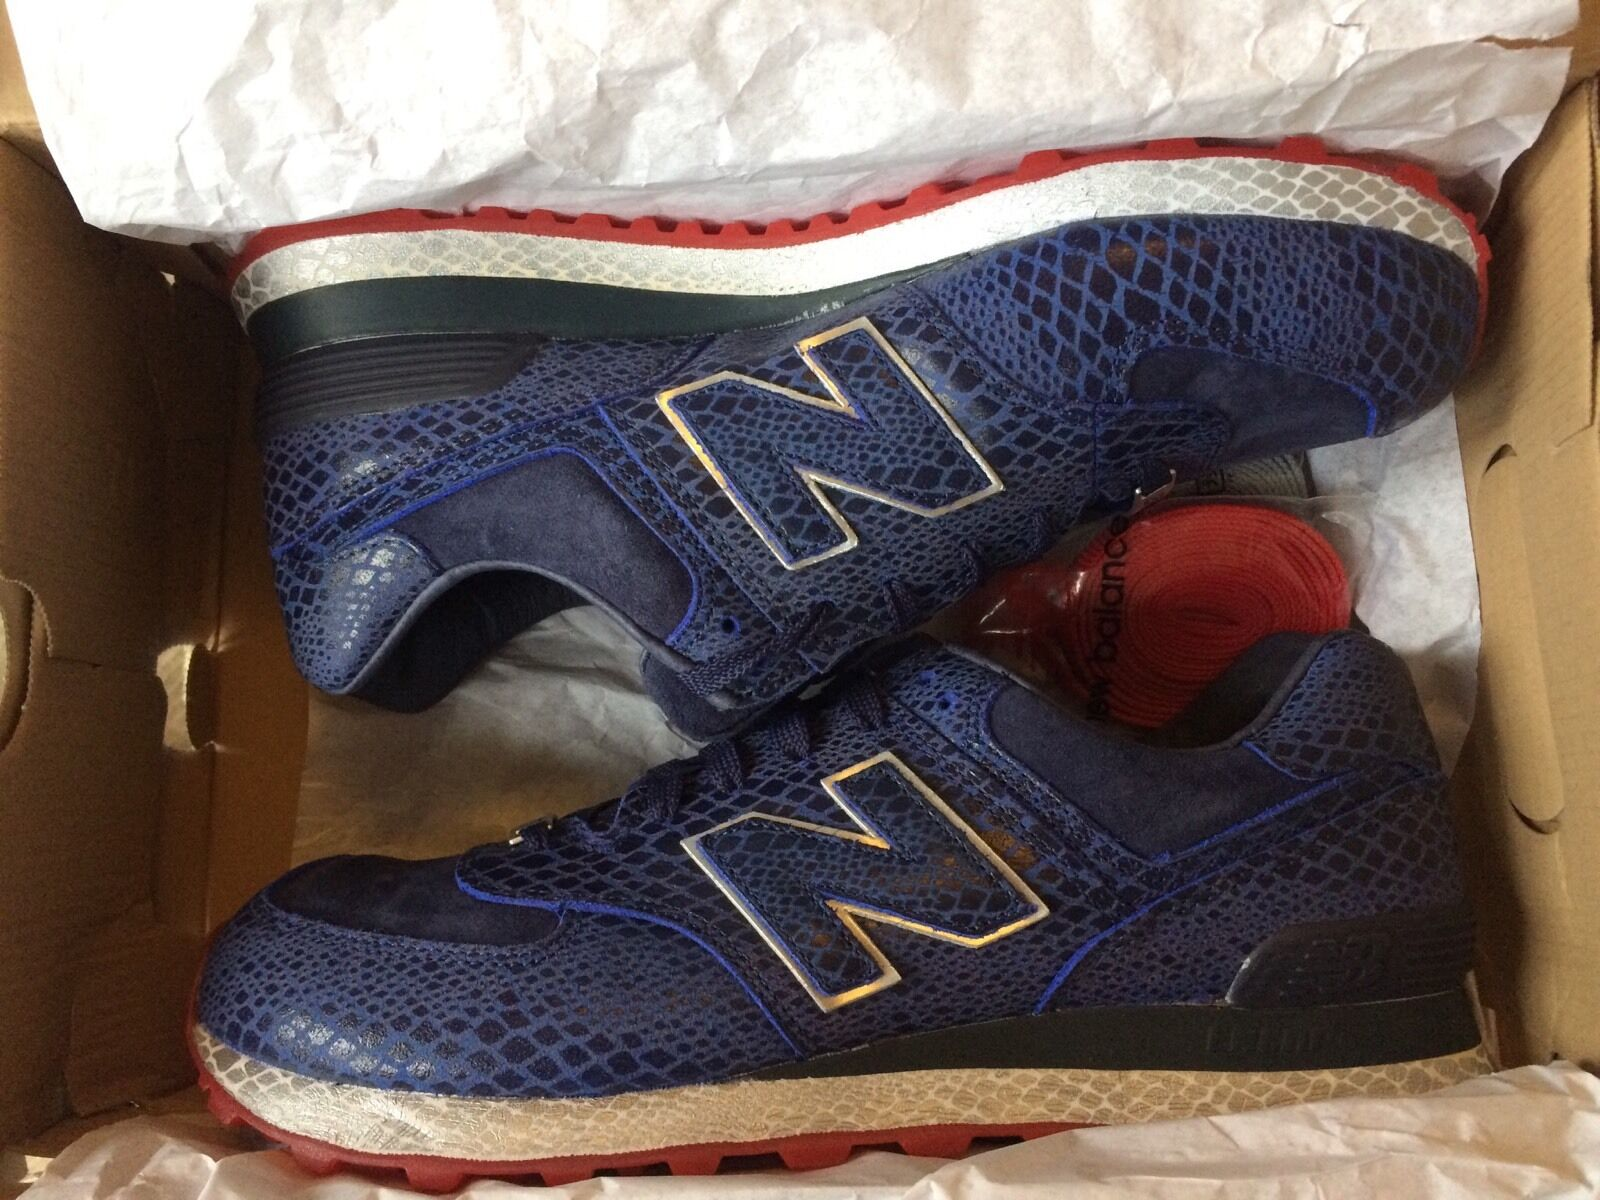 New Balance 574/710 X Appât G.I. Joe Twin Pack Limited Limited Limited Edition UK11.5 US12 | Exceptionnelle